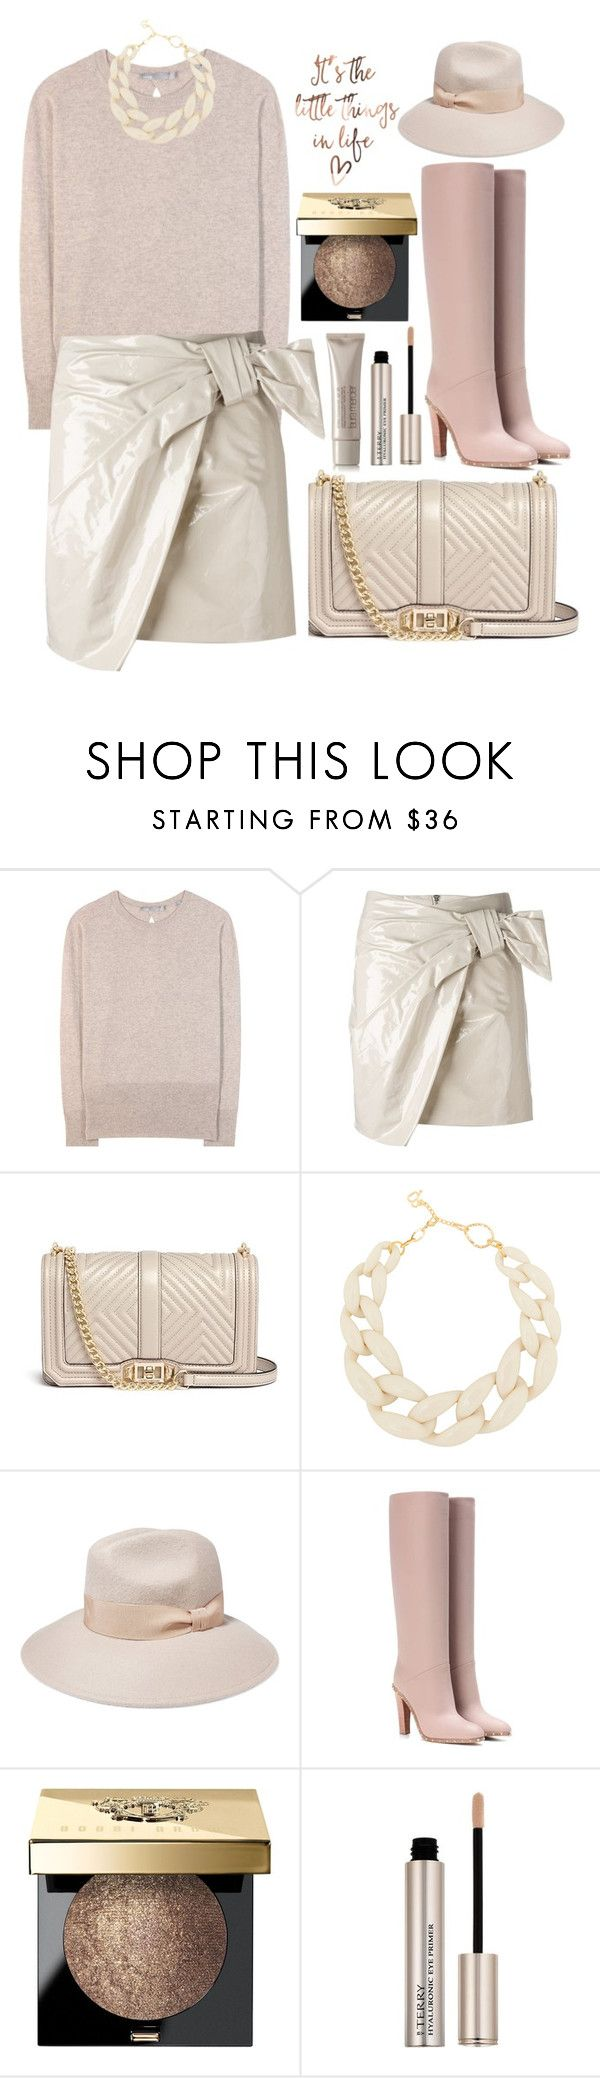 """""""It's the little things in life what matters"""" by alaria ❤ liked on Polyvore featuring Vince, Isabel Marant, Rebecca Minkoff, DIANA BROUSSARD, Iris & Ink, Valentino, Bobbi Brown Cosmetics, By Terry, Laura Mercier and neutrals"""